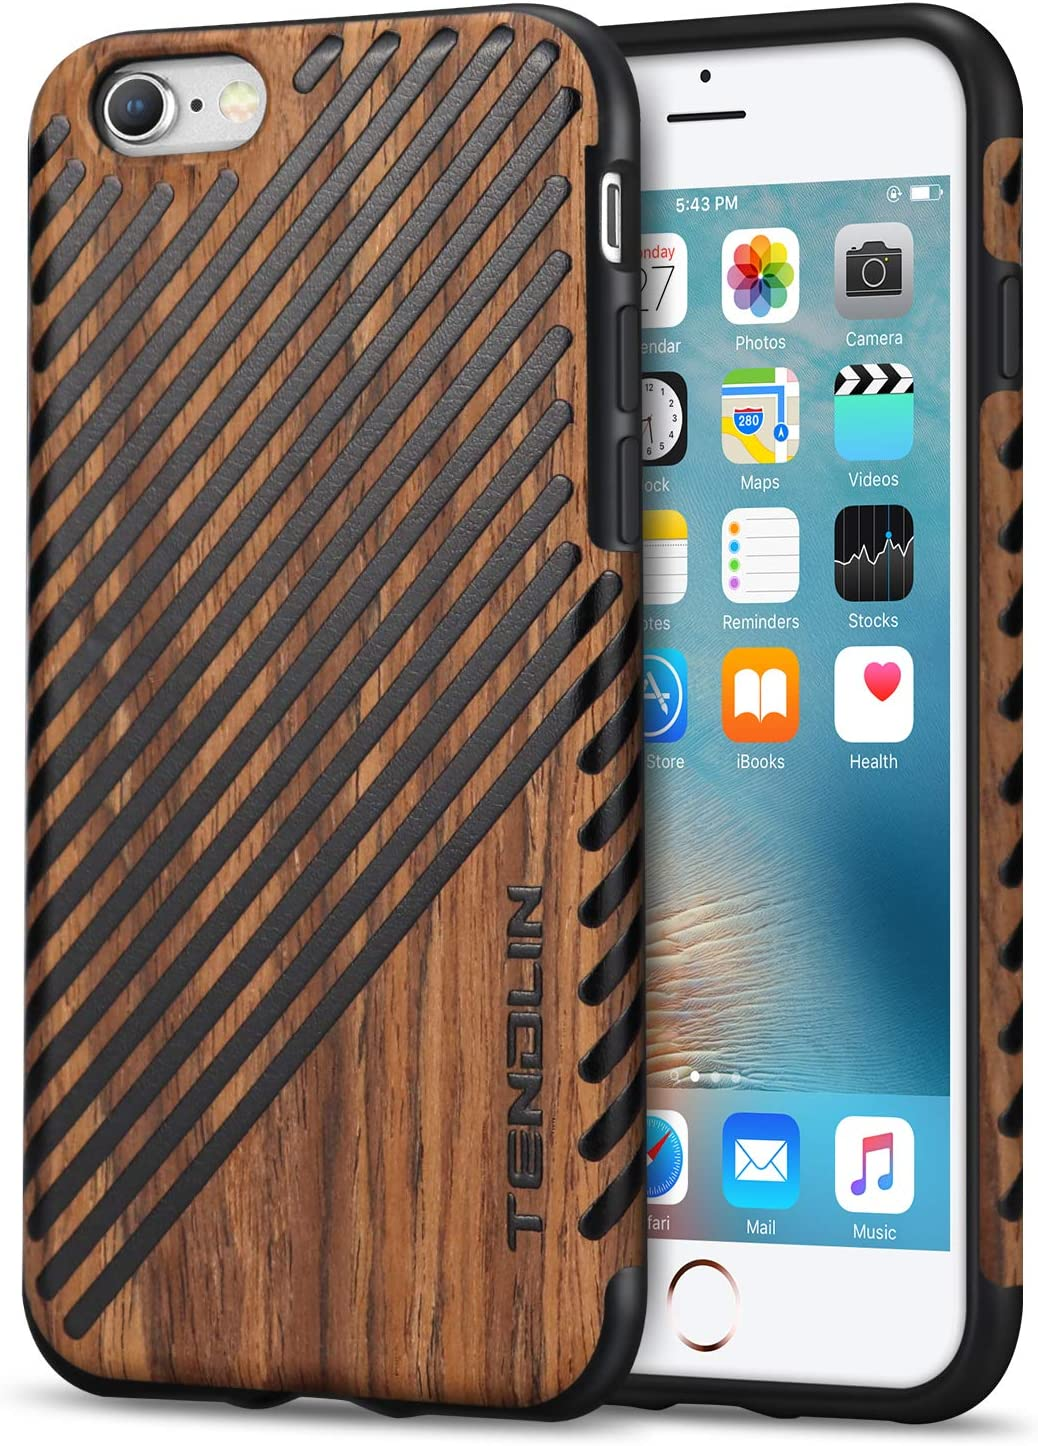 TENDLIN iPhone 6s Case Wood Veneer Soft TPU Silicone Hybrid Slim Case for iPhone 6 6s (Wood & Leather)